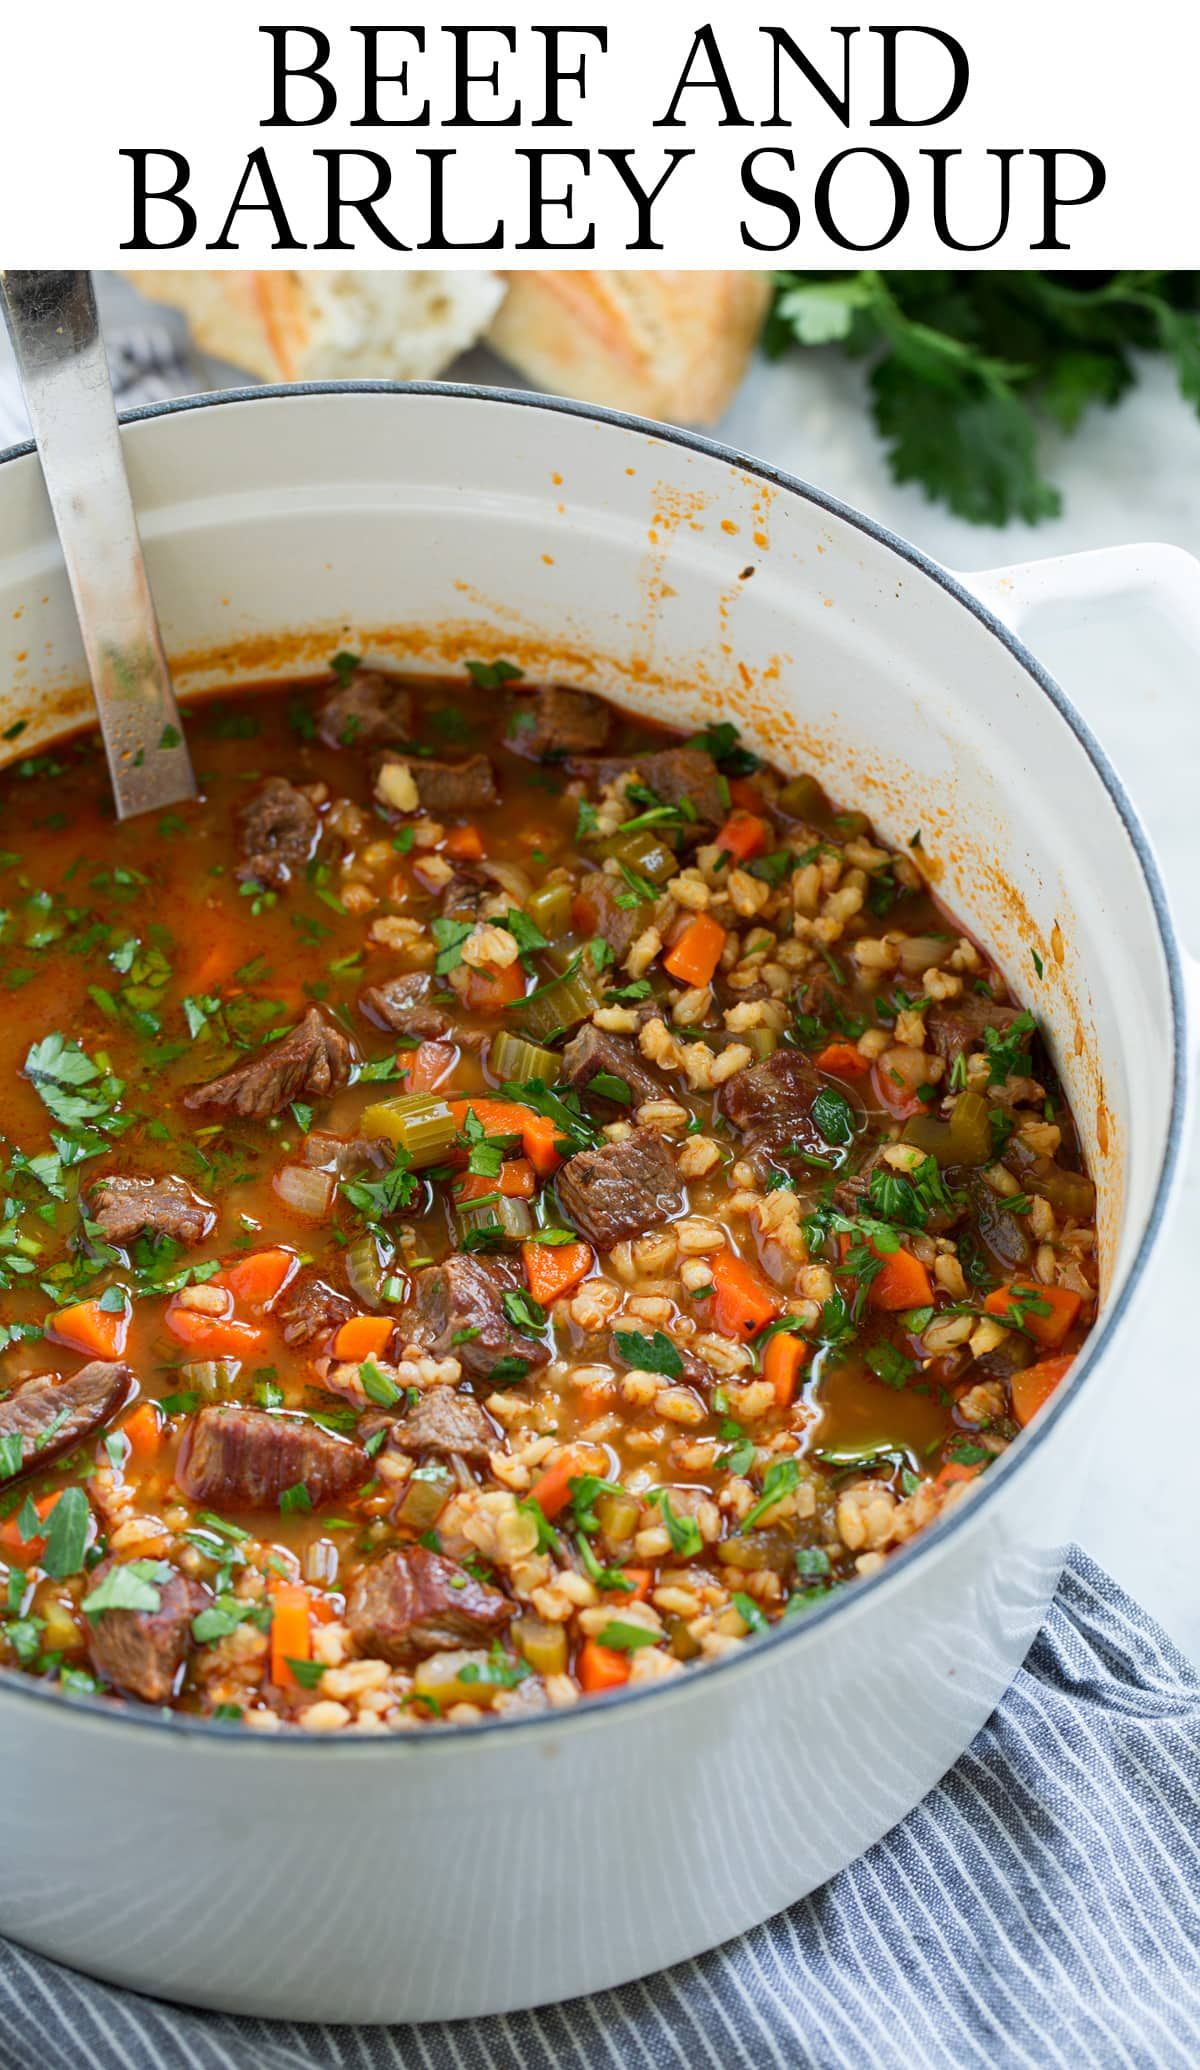 Beef Barley Soup (Stovetop, Crockpot, Instant Pot) - Cooking Classy